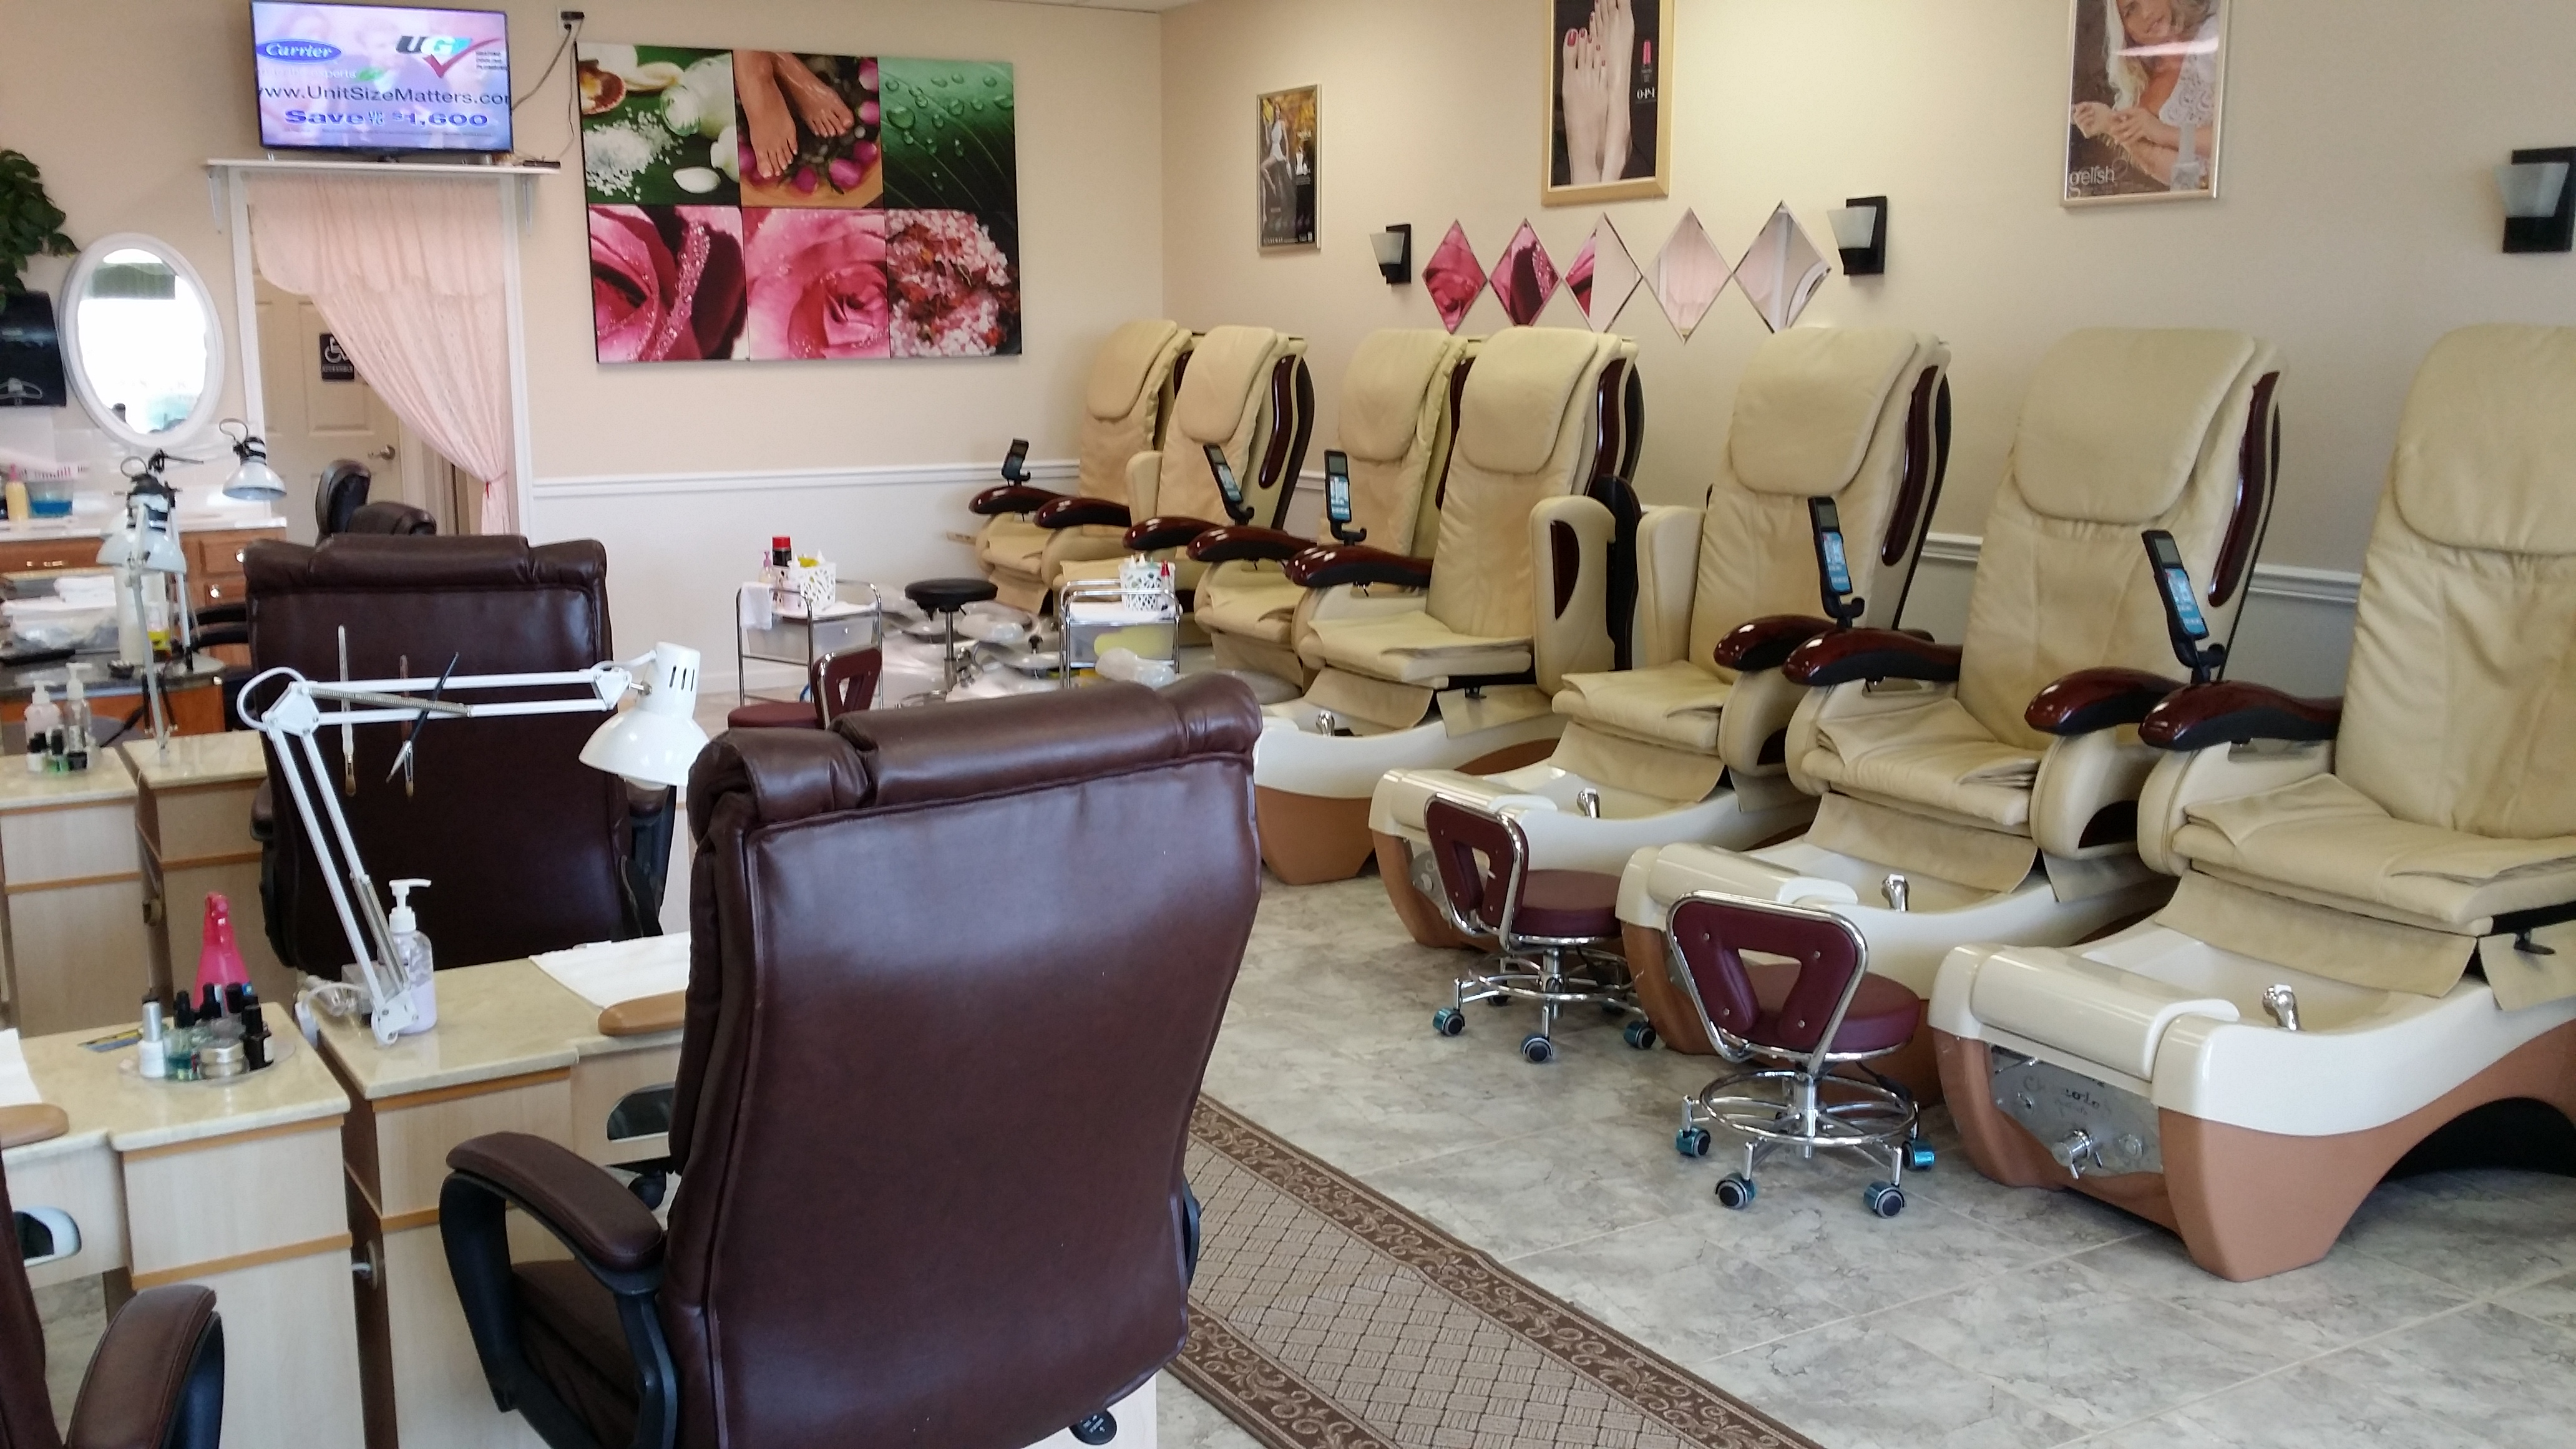 5 Star Nails 2042 E Old Lincoln Hwy, Langhorne, PA 19047 - YP.com